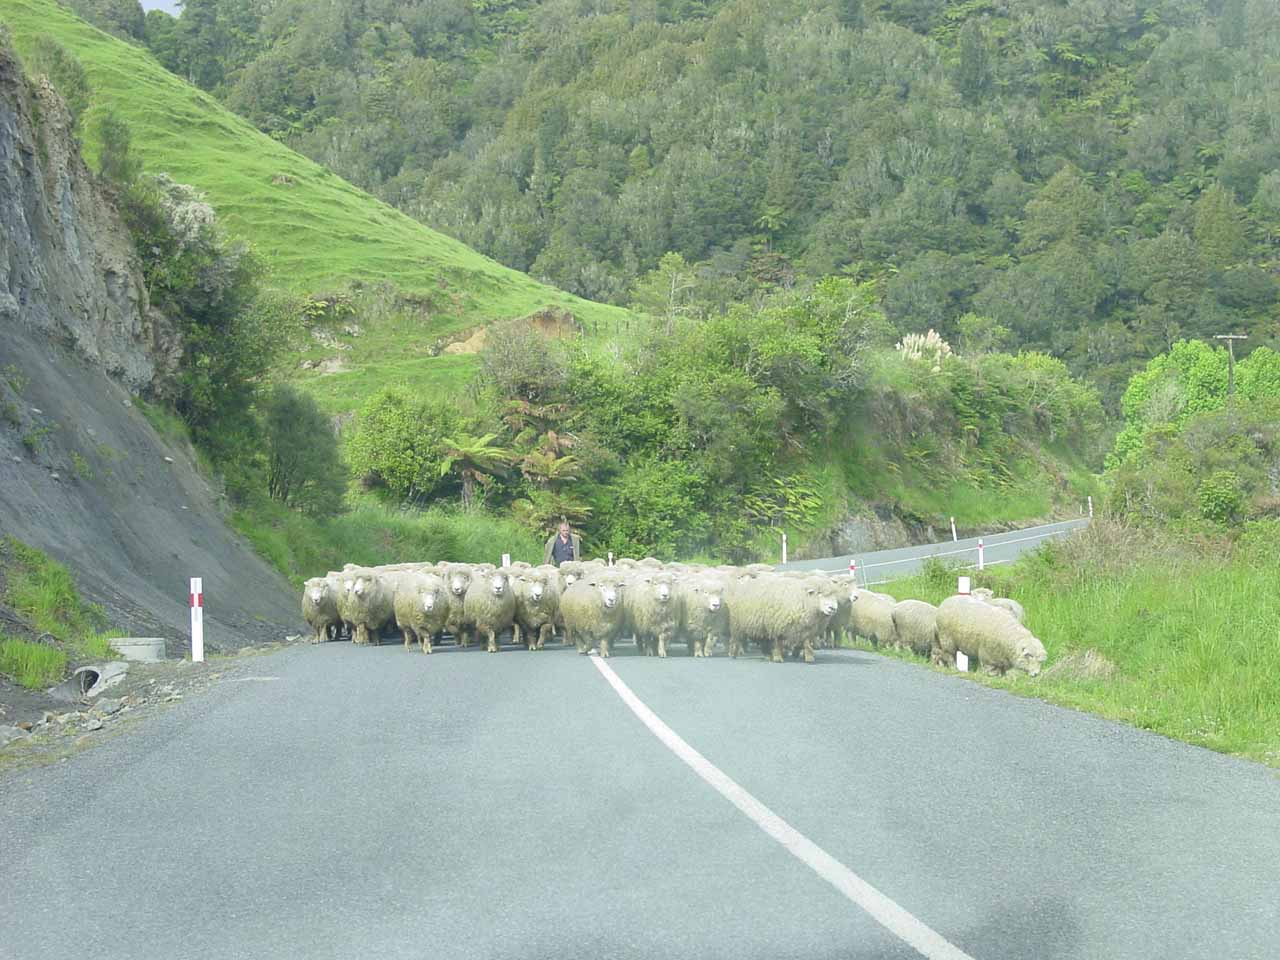 Sheep crossing on the Forgotten World Highway